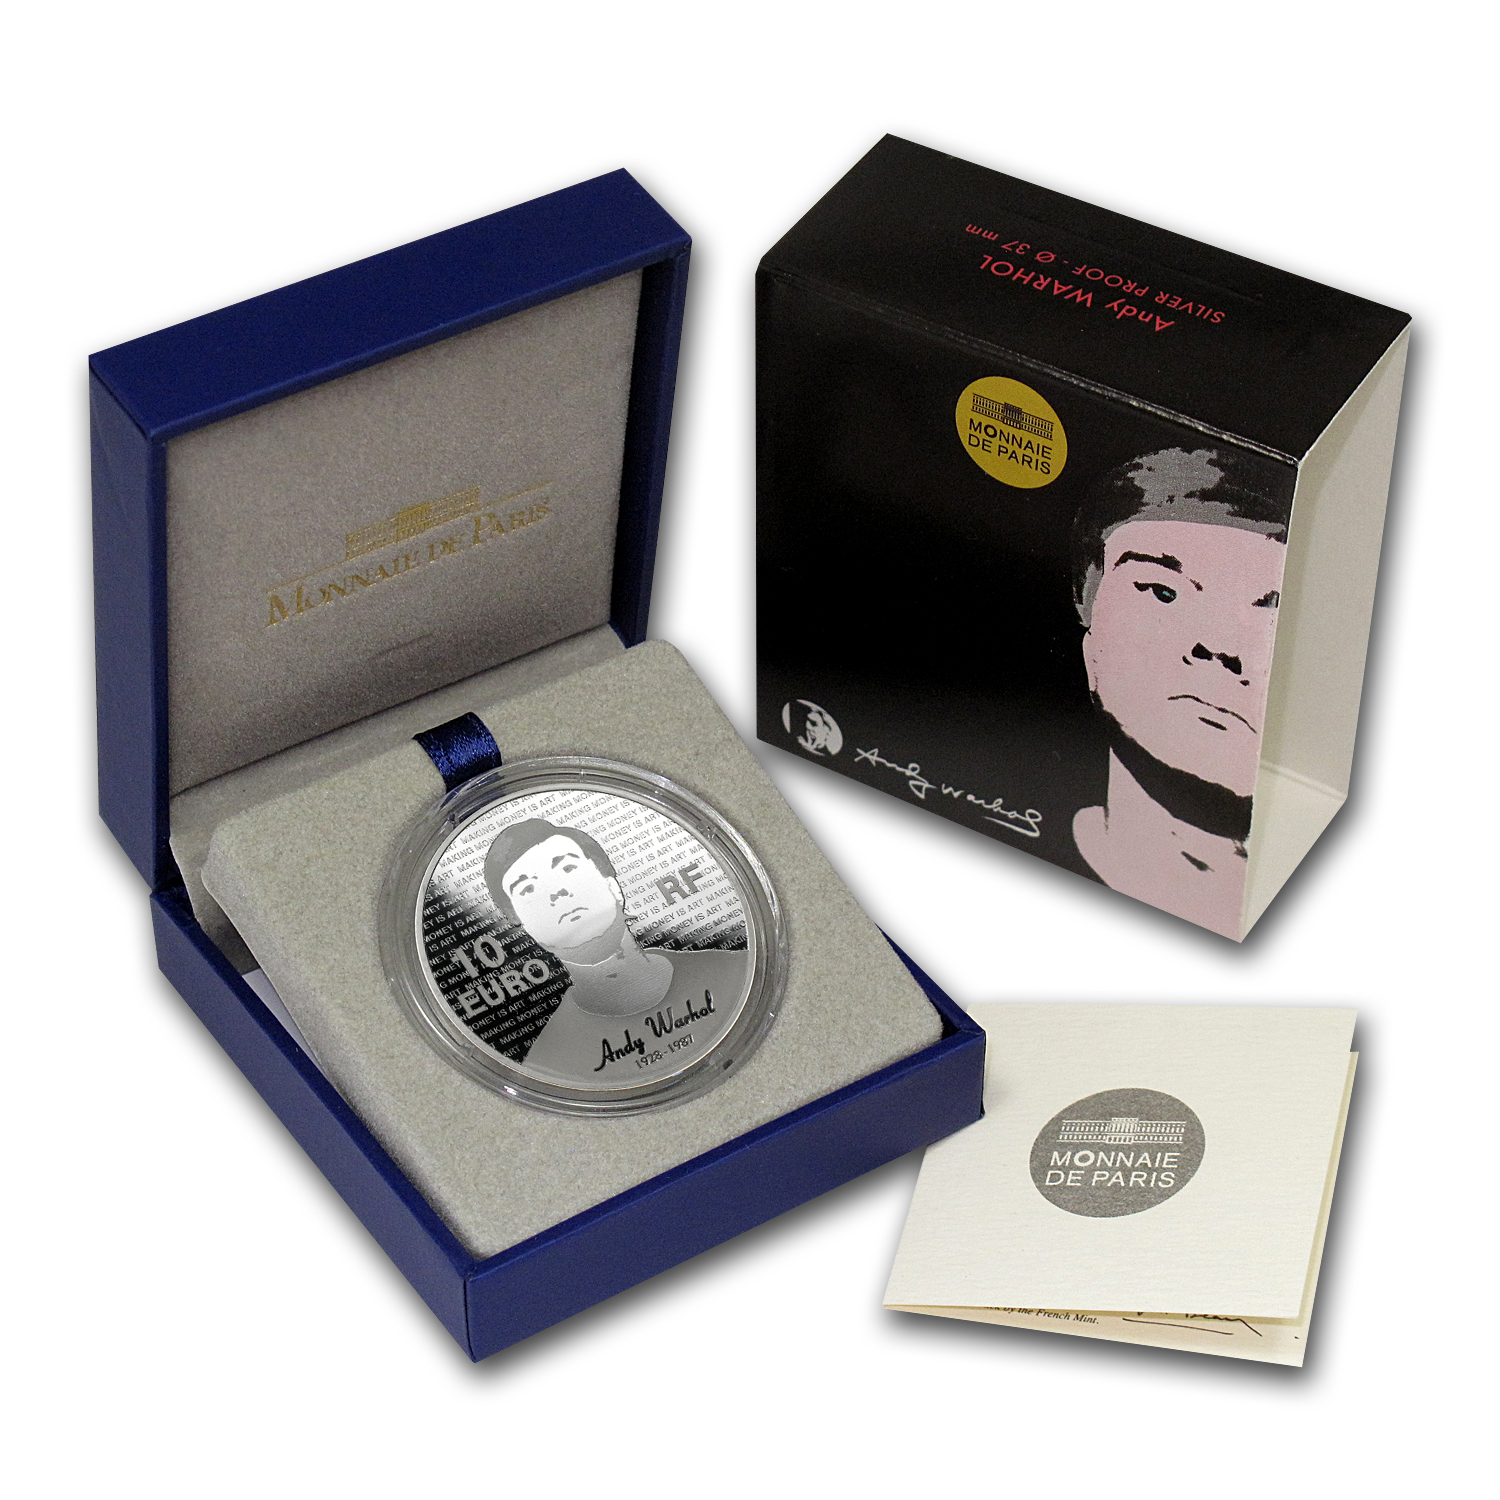 2011 €10 Silver Proof Series of French Painters - Andy Warhol